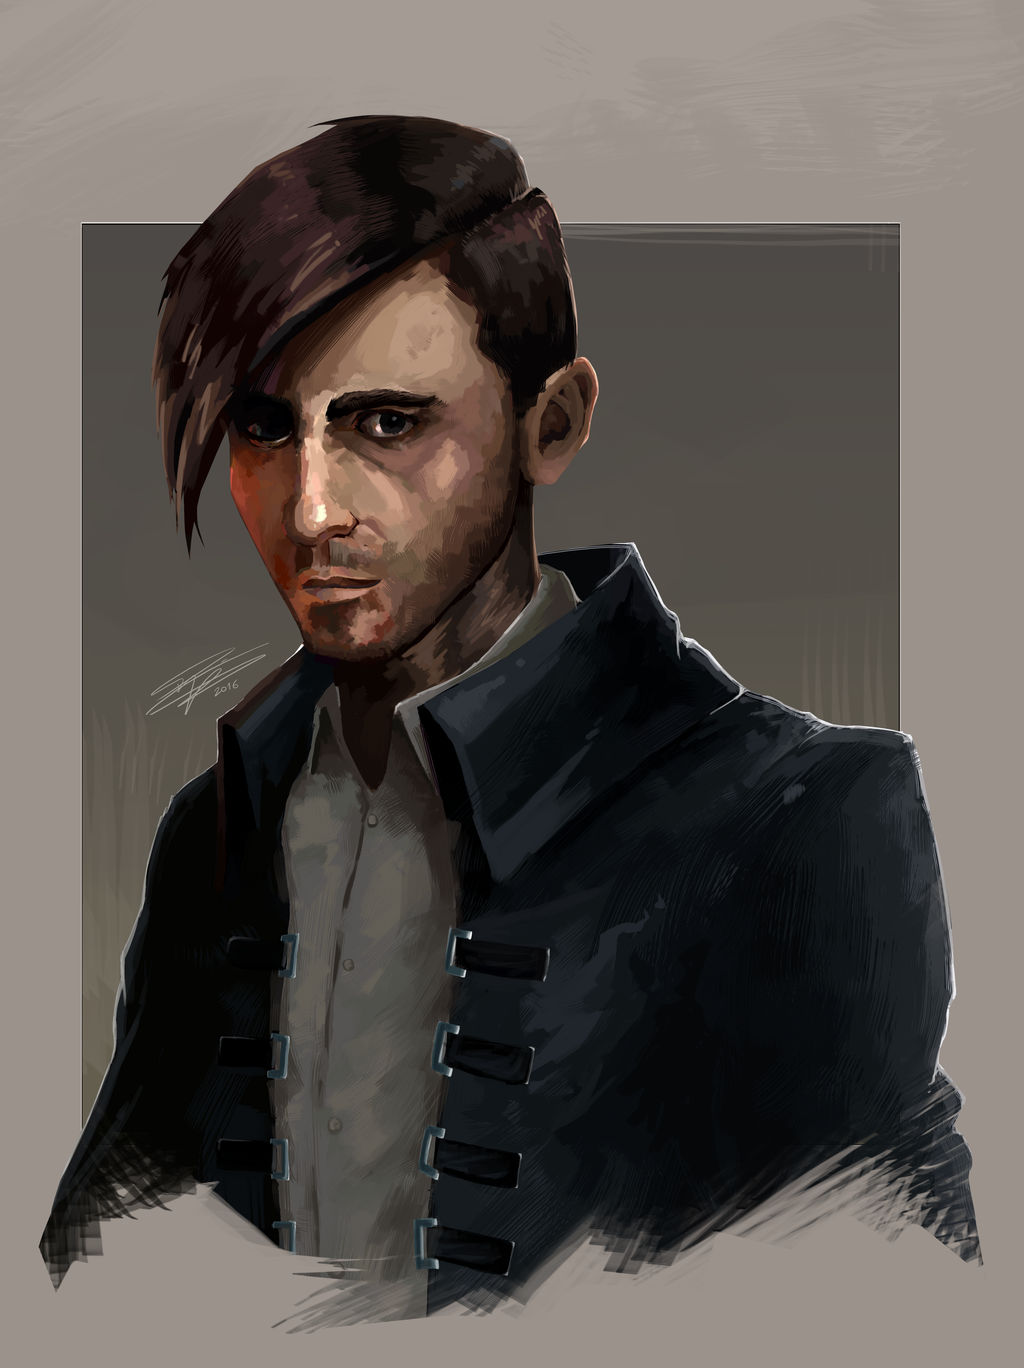 Antiquated Ray in the style of Dishonored by raymondafcripps